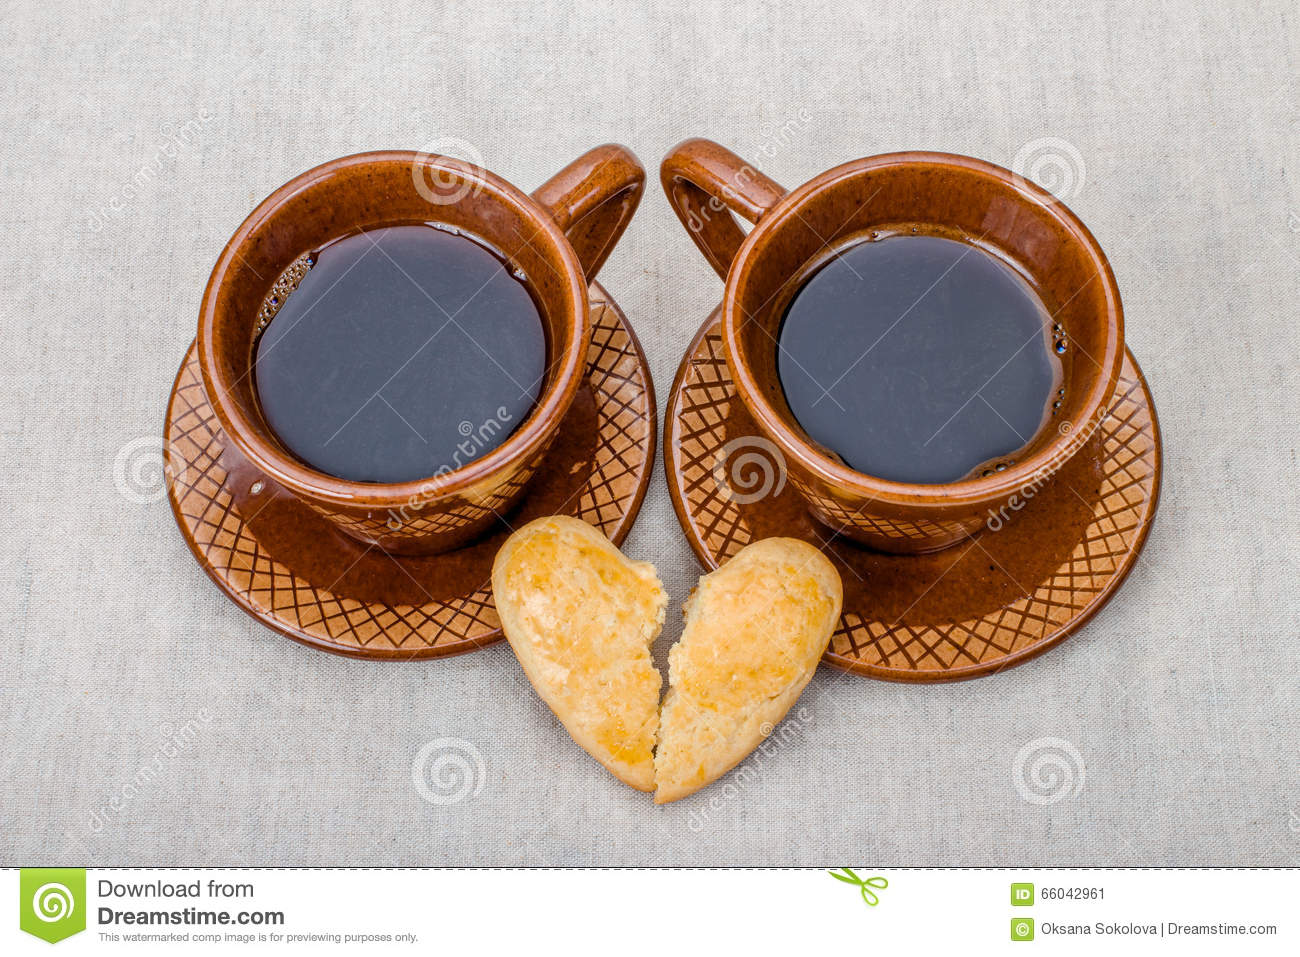 Cup of coffee and a broken heart